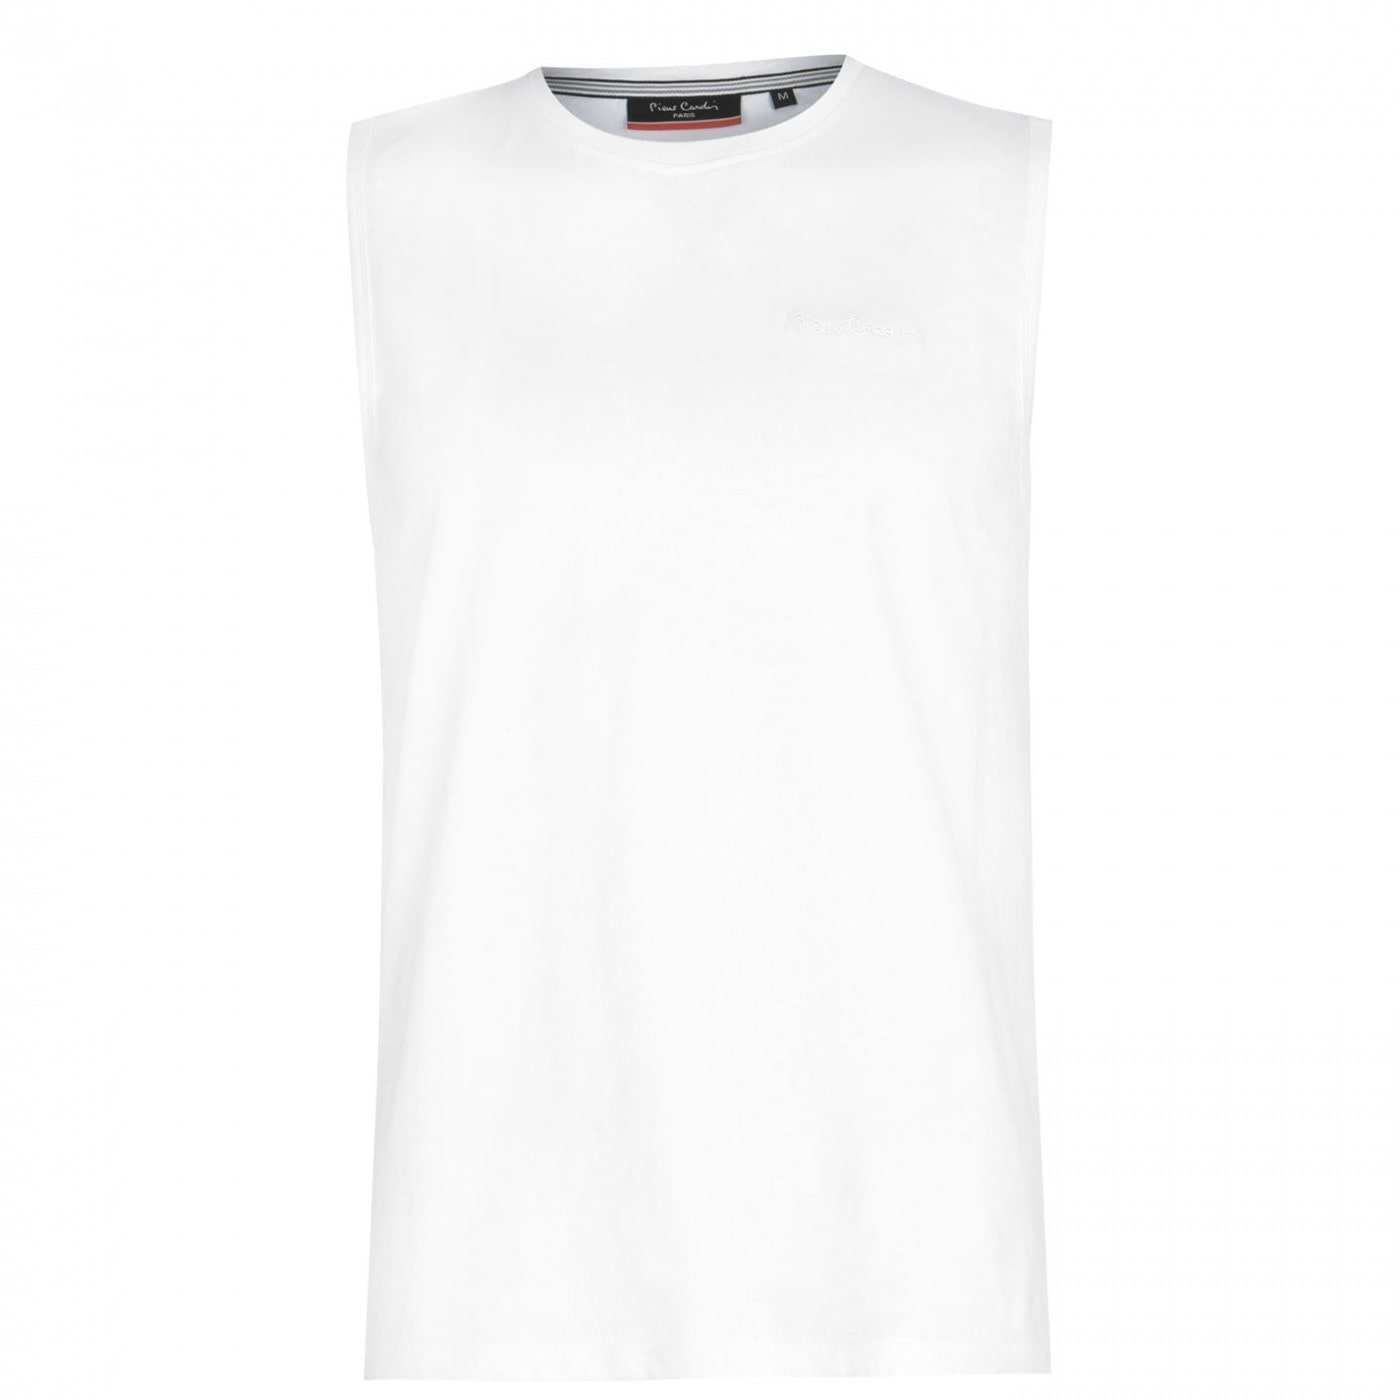 Pierre Cardin Embroidered Sleeveless T Shirt Mens